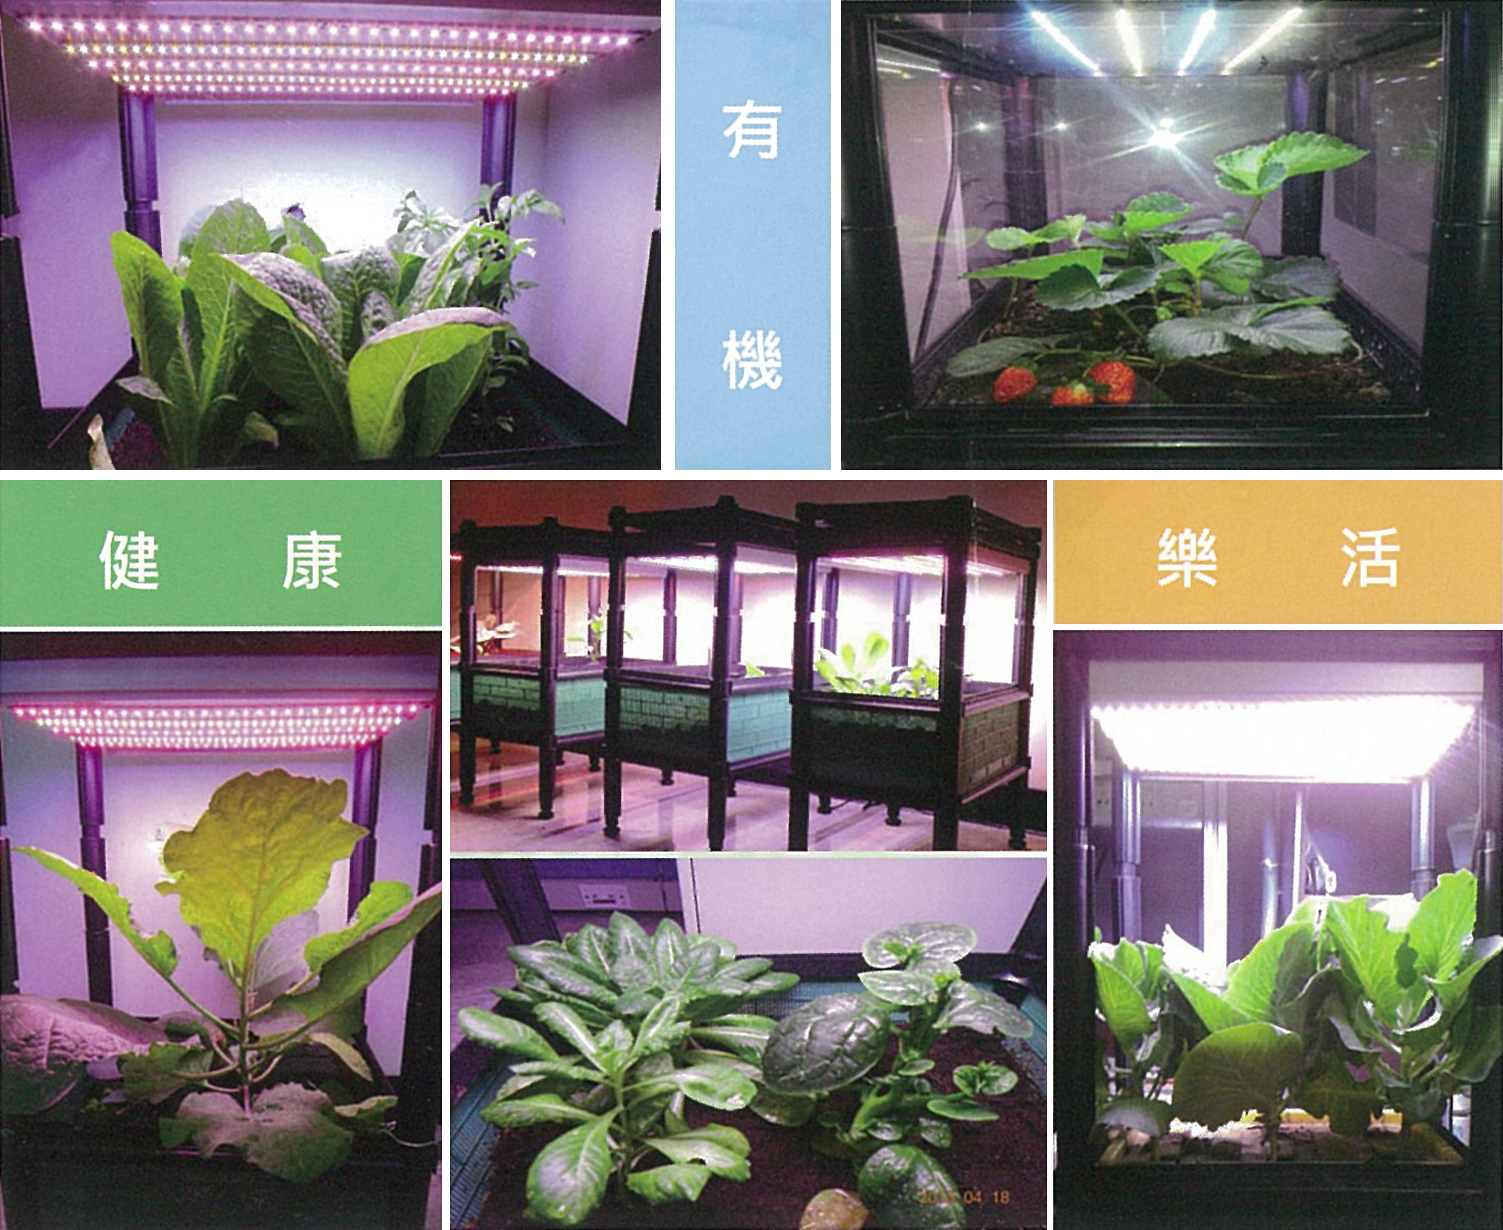 Chiplus's LED horticultural lamps are unique in having six wavelengths that simulate round-the-clock natural light.